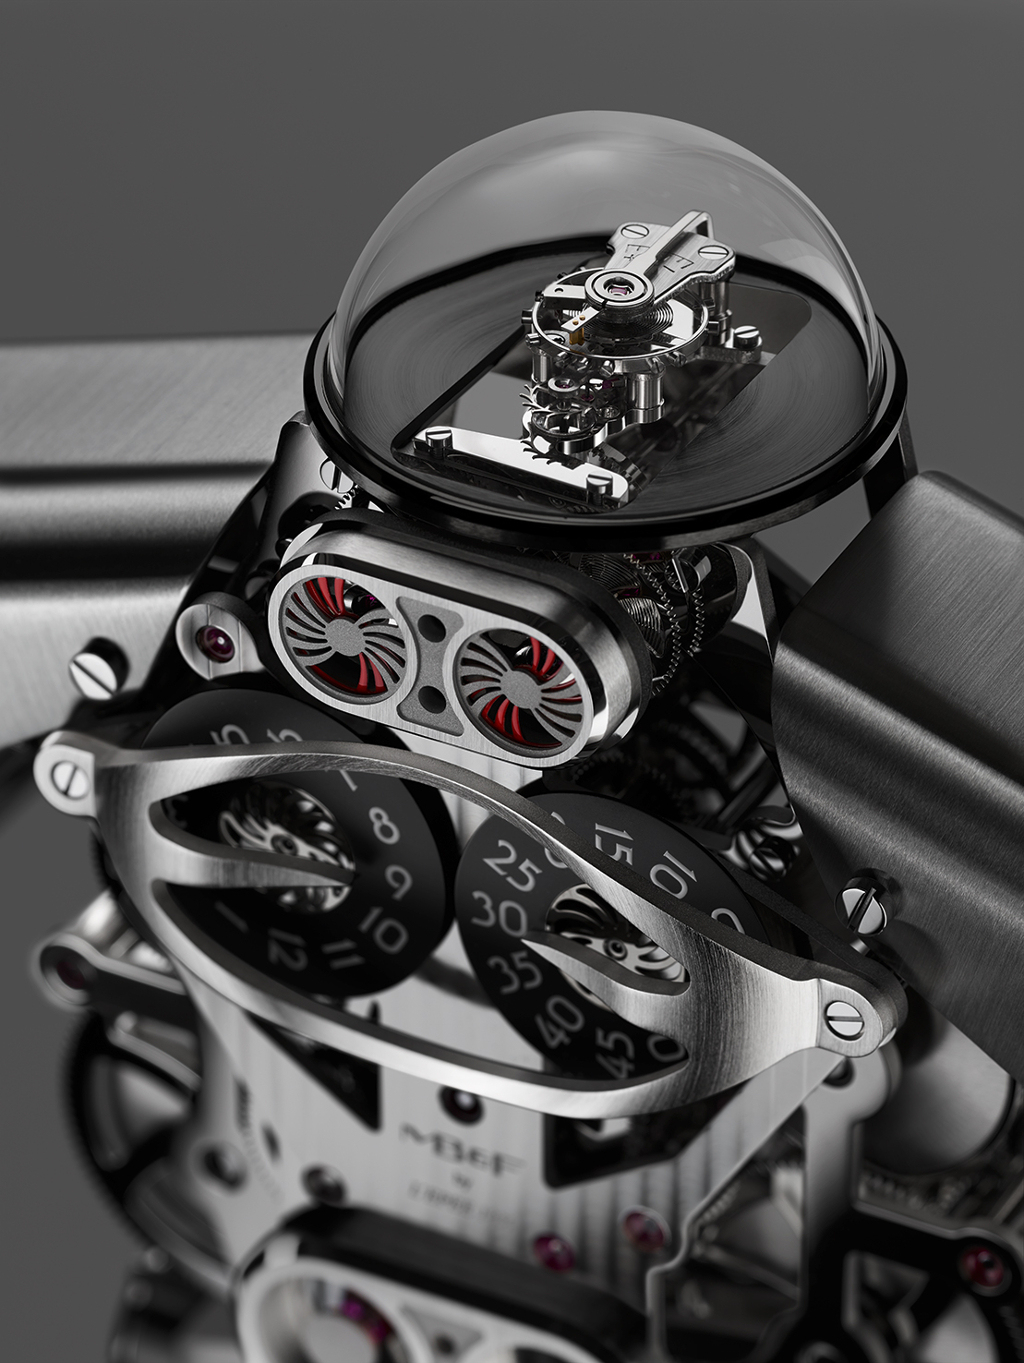 MB&F MELCHIOR head